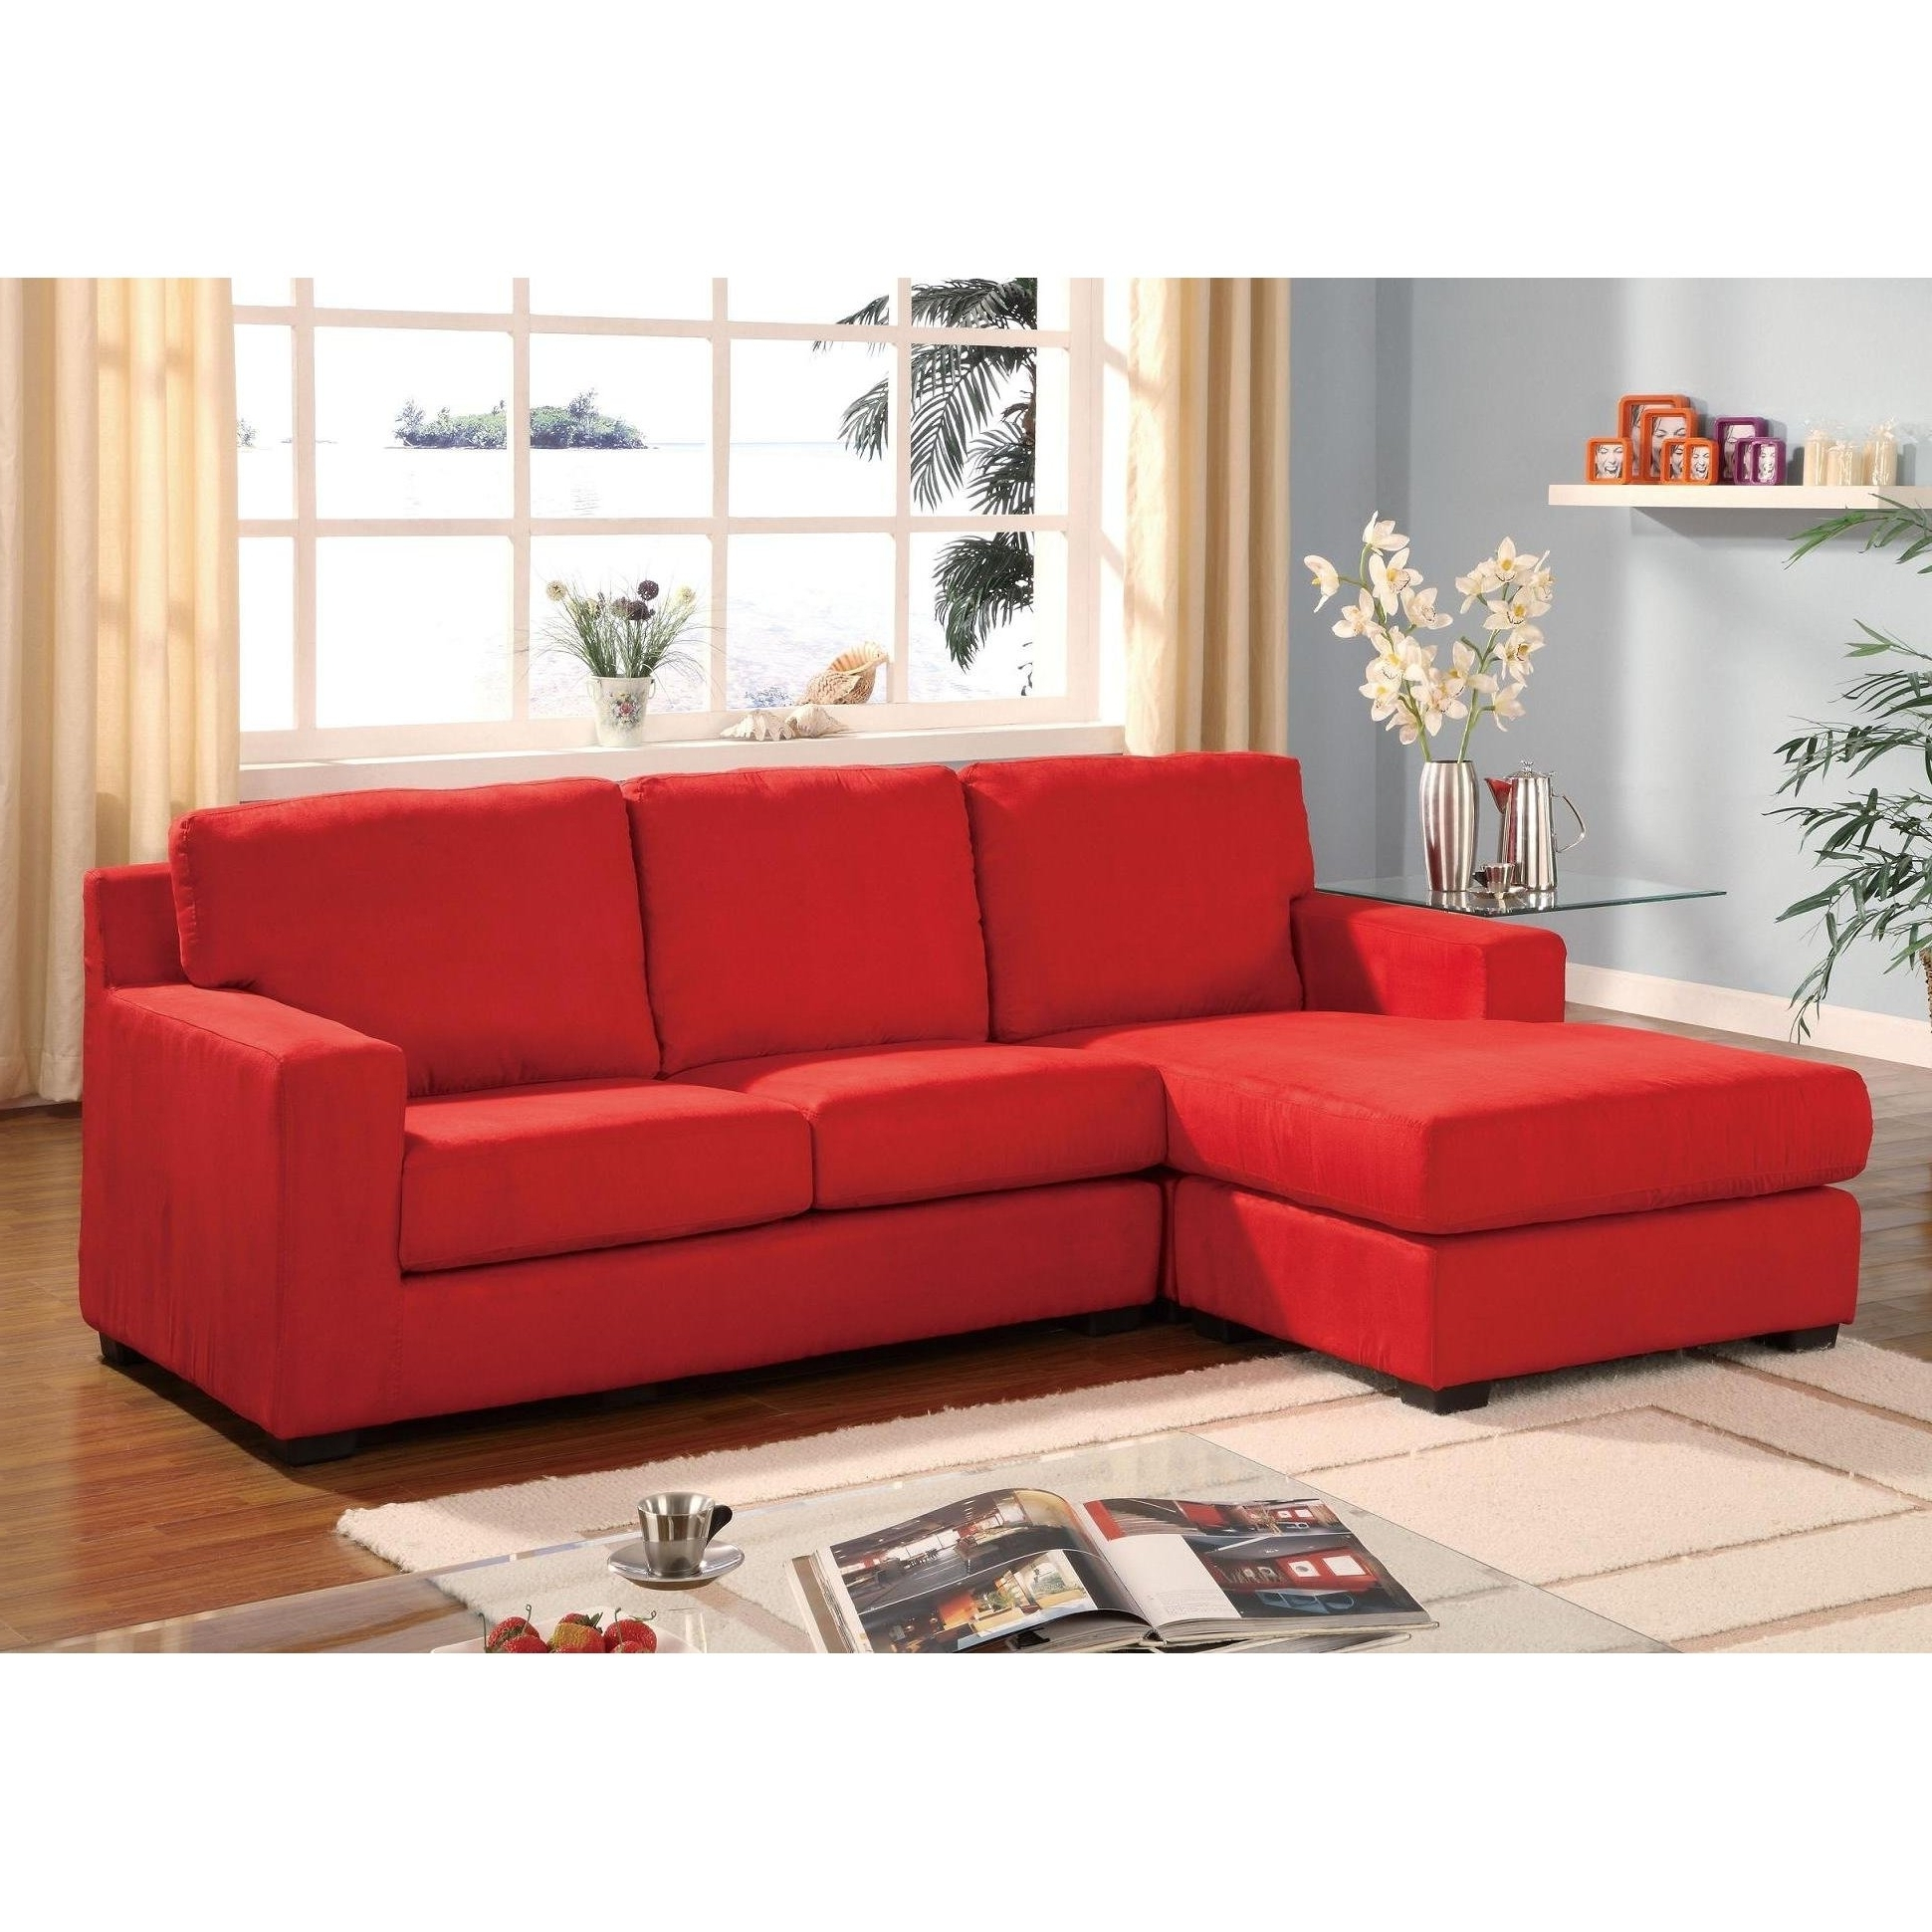 Reclining Sectional Sofas For Small (View 7 of 20)